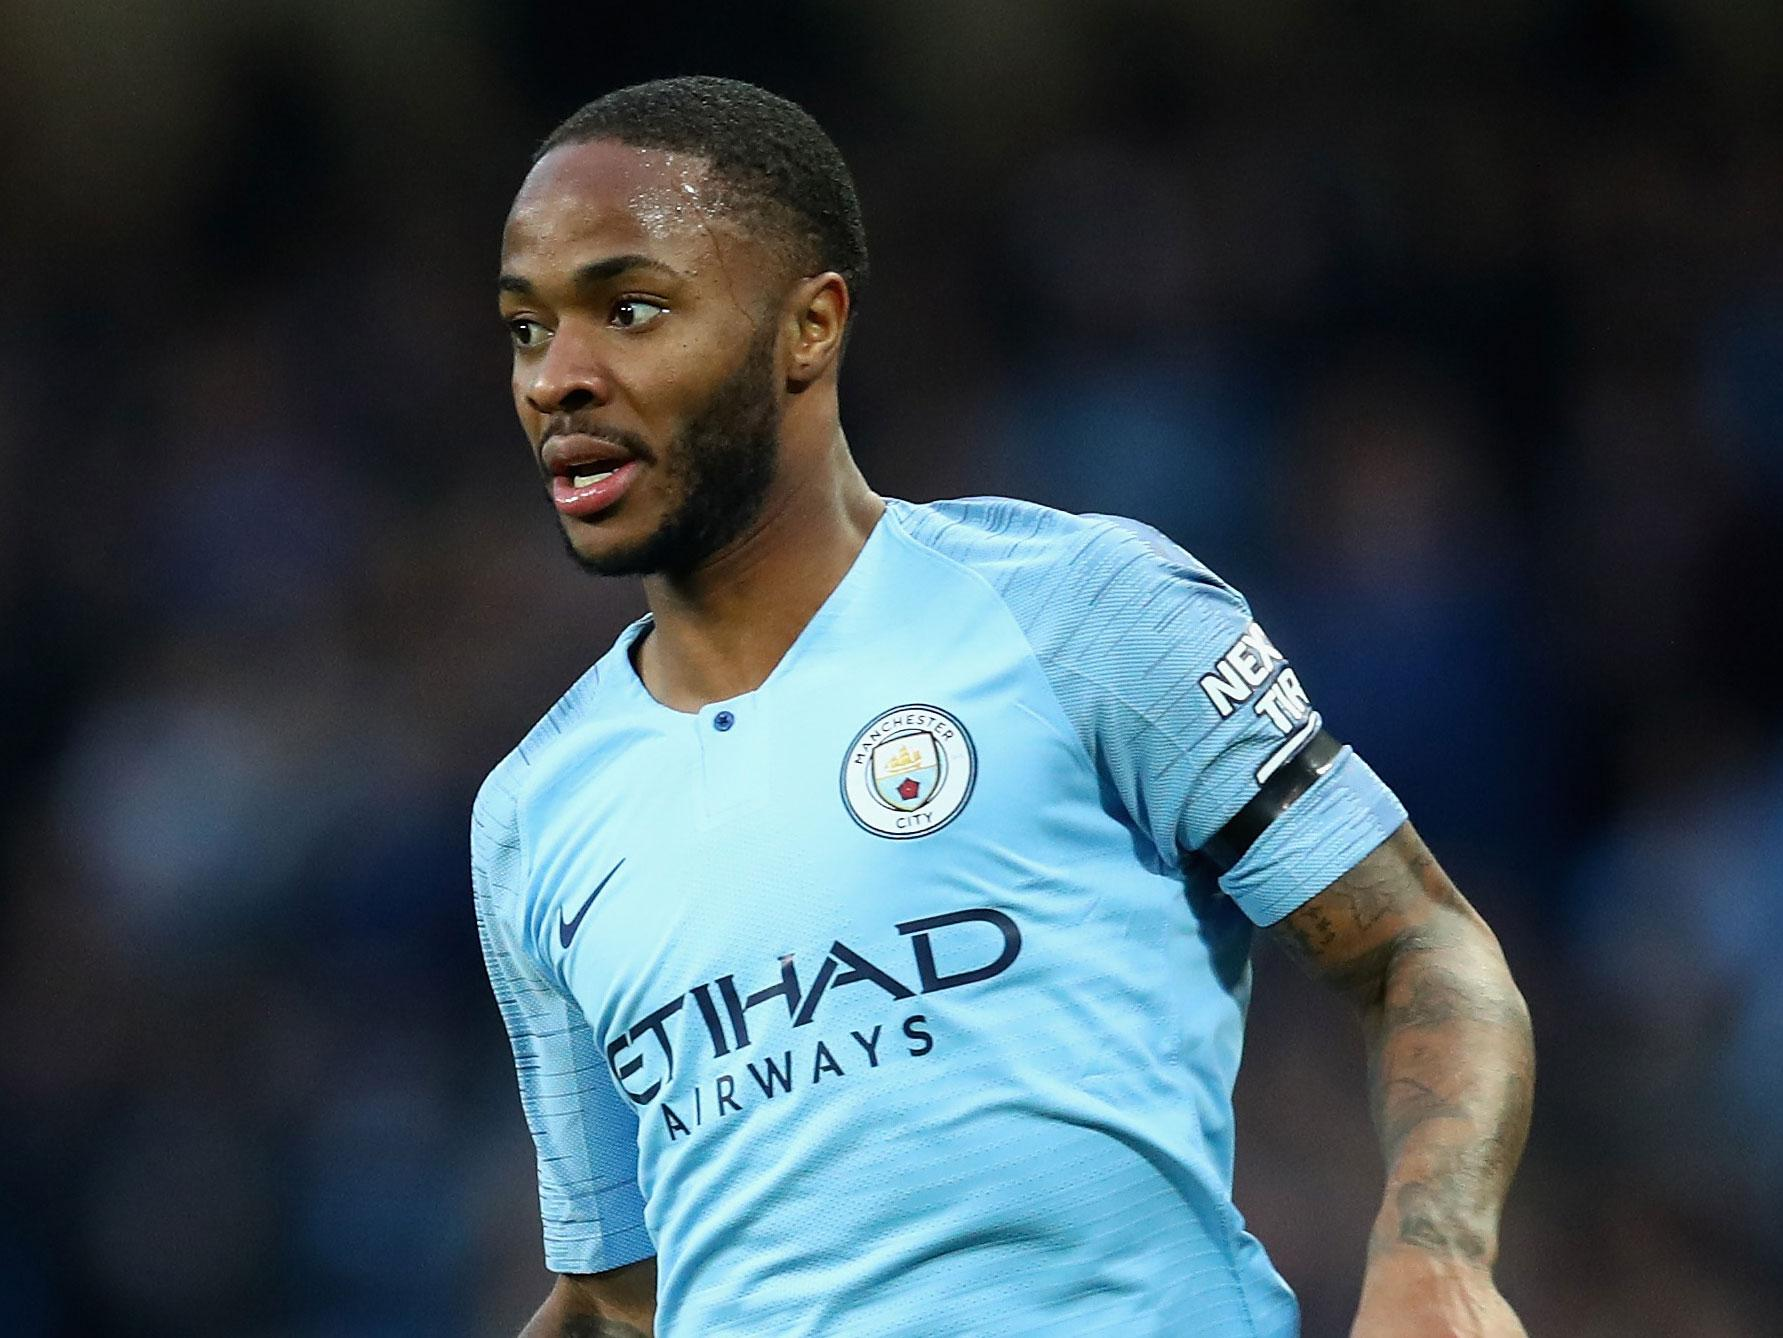 Raheem Sterling signs new Manchester City contract until 2023 worth  potential £300,000-a-week | The Independent